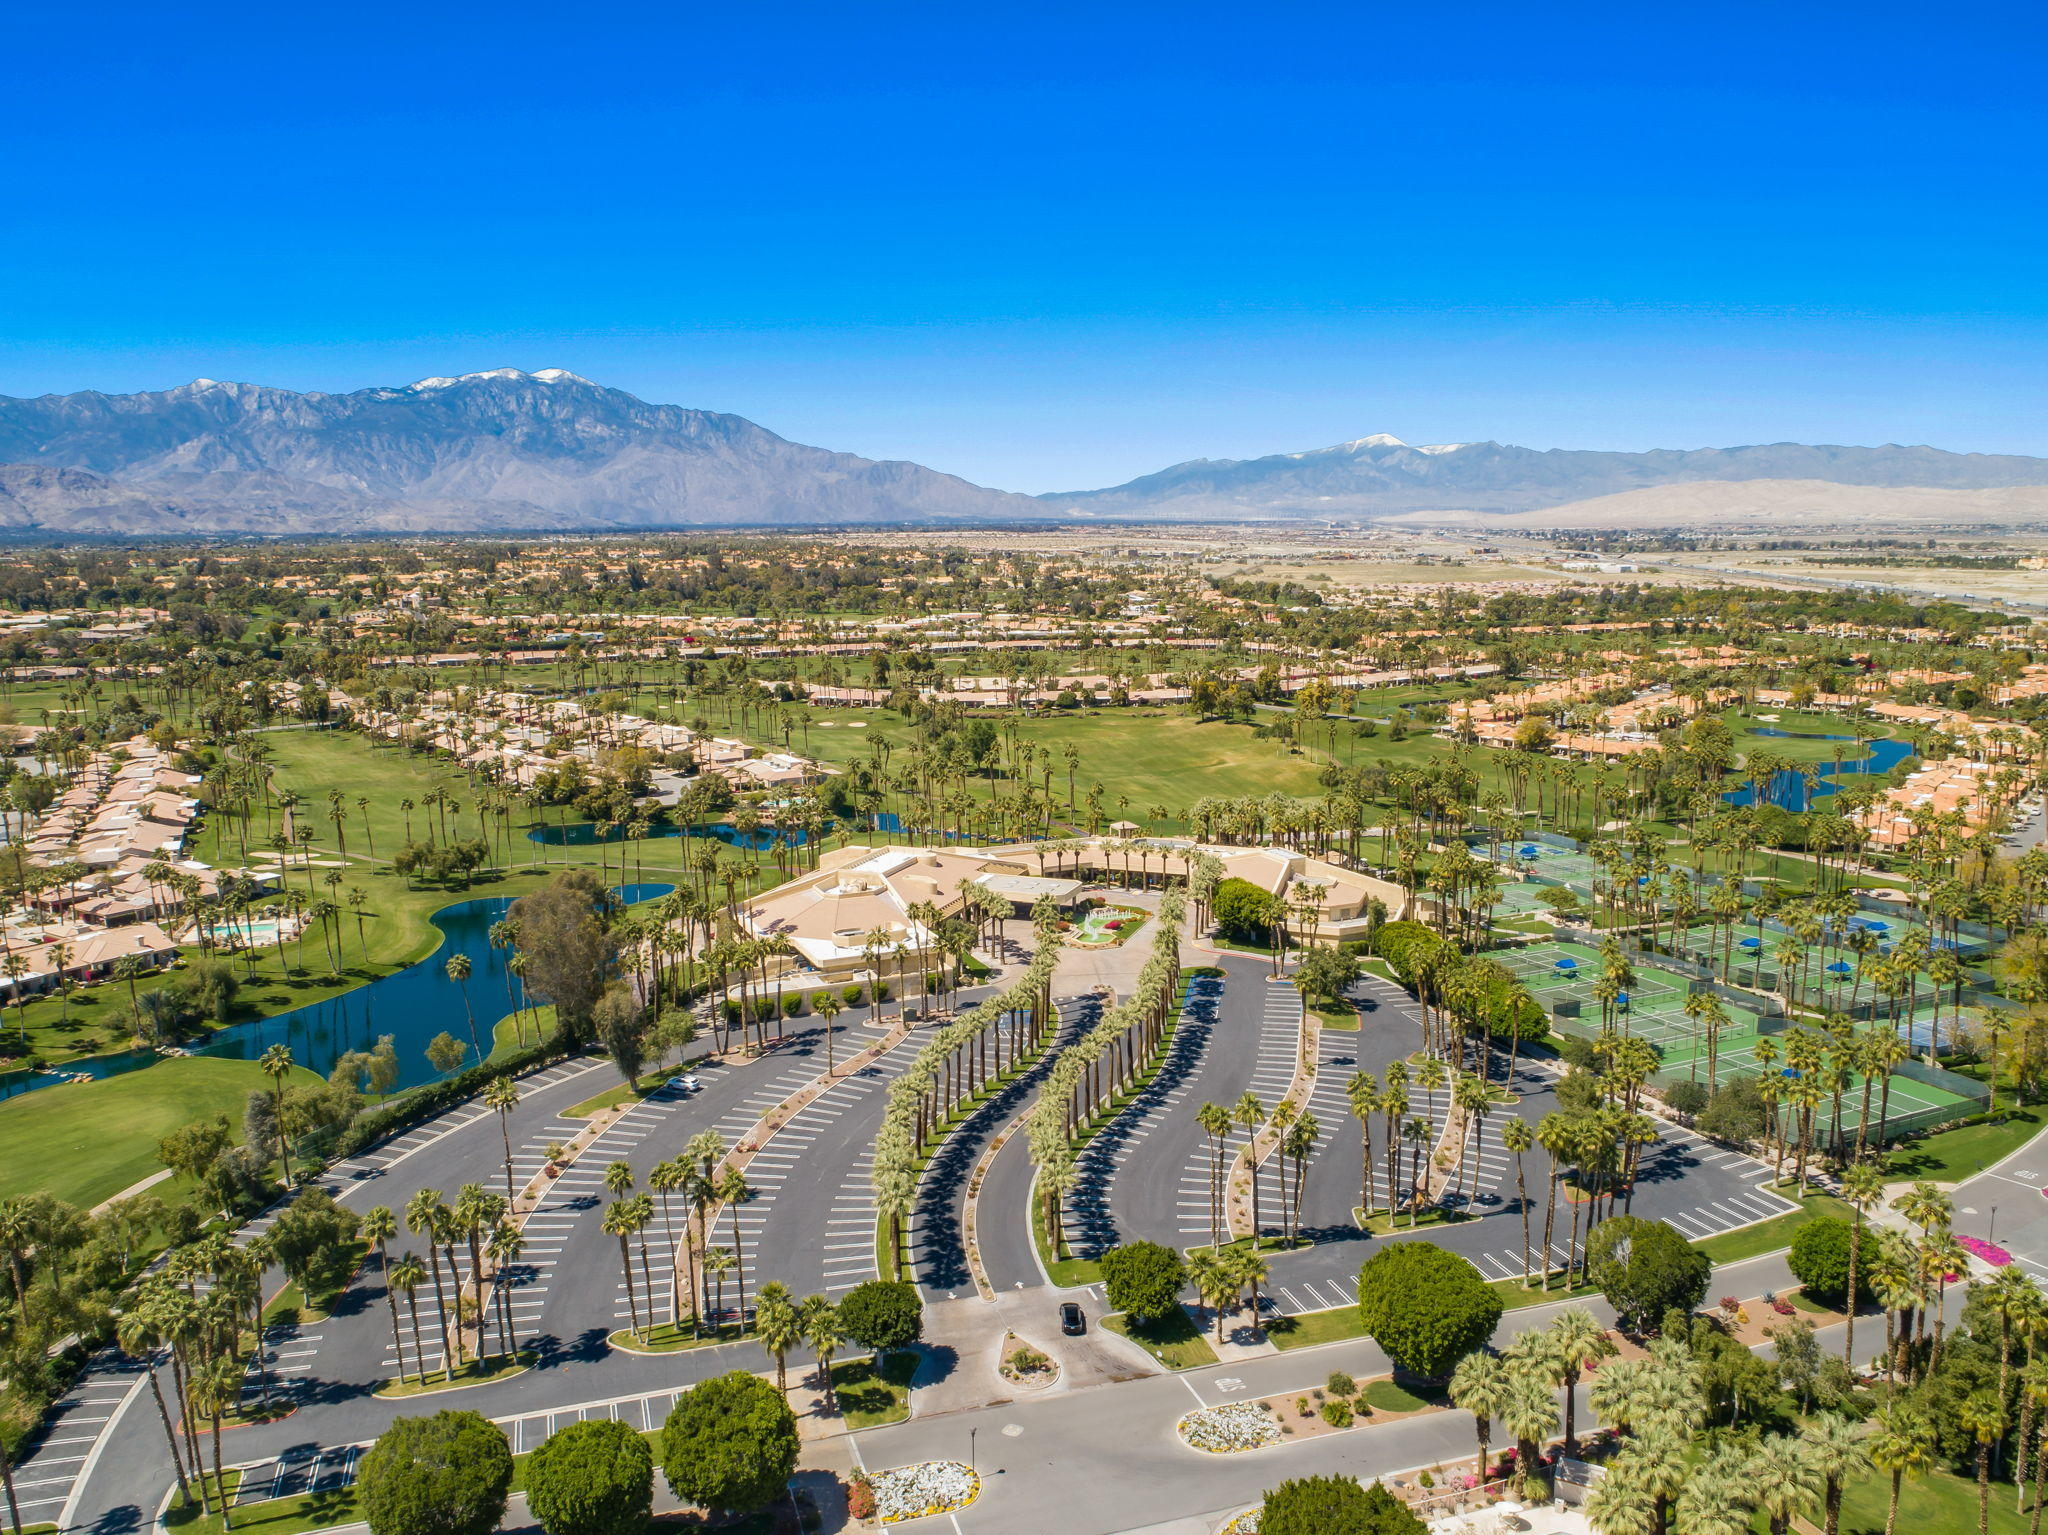 38975 Wisteria Drive, Palm Desert, California 92211, 2 Bedrooms Bedrooms, ,2 BathroomsBathrooms,Residential,For Sale,38975 Wisteria Drive,219041613